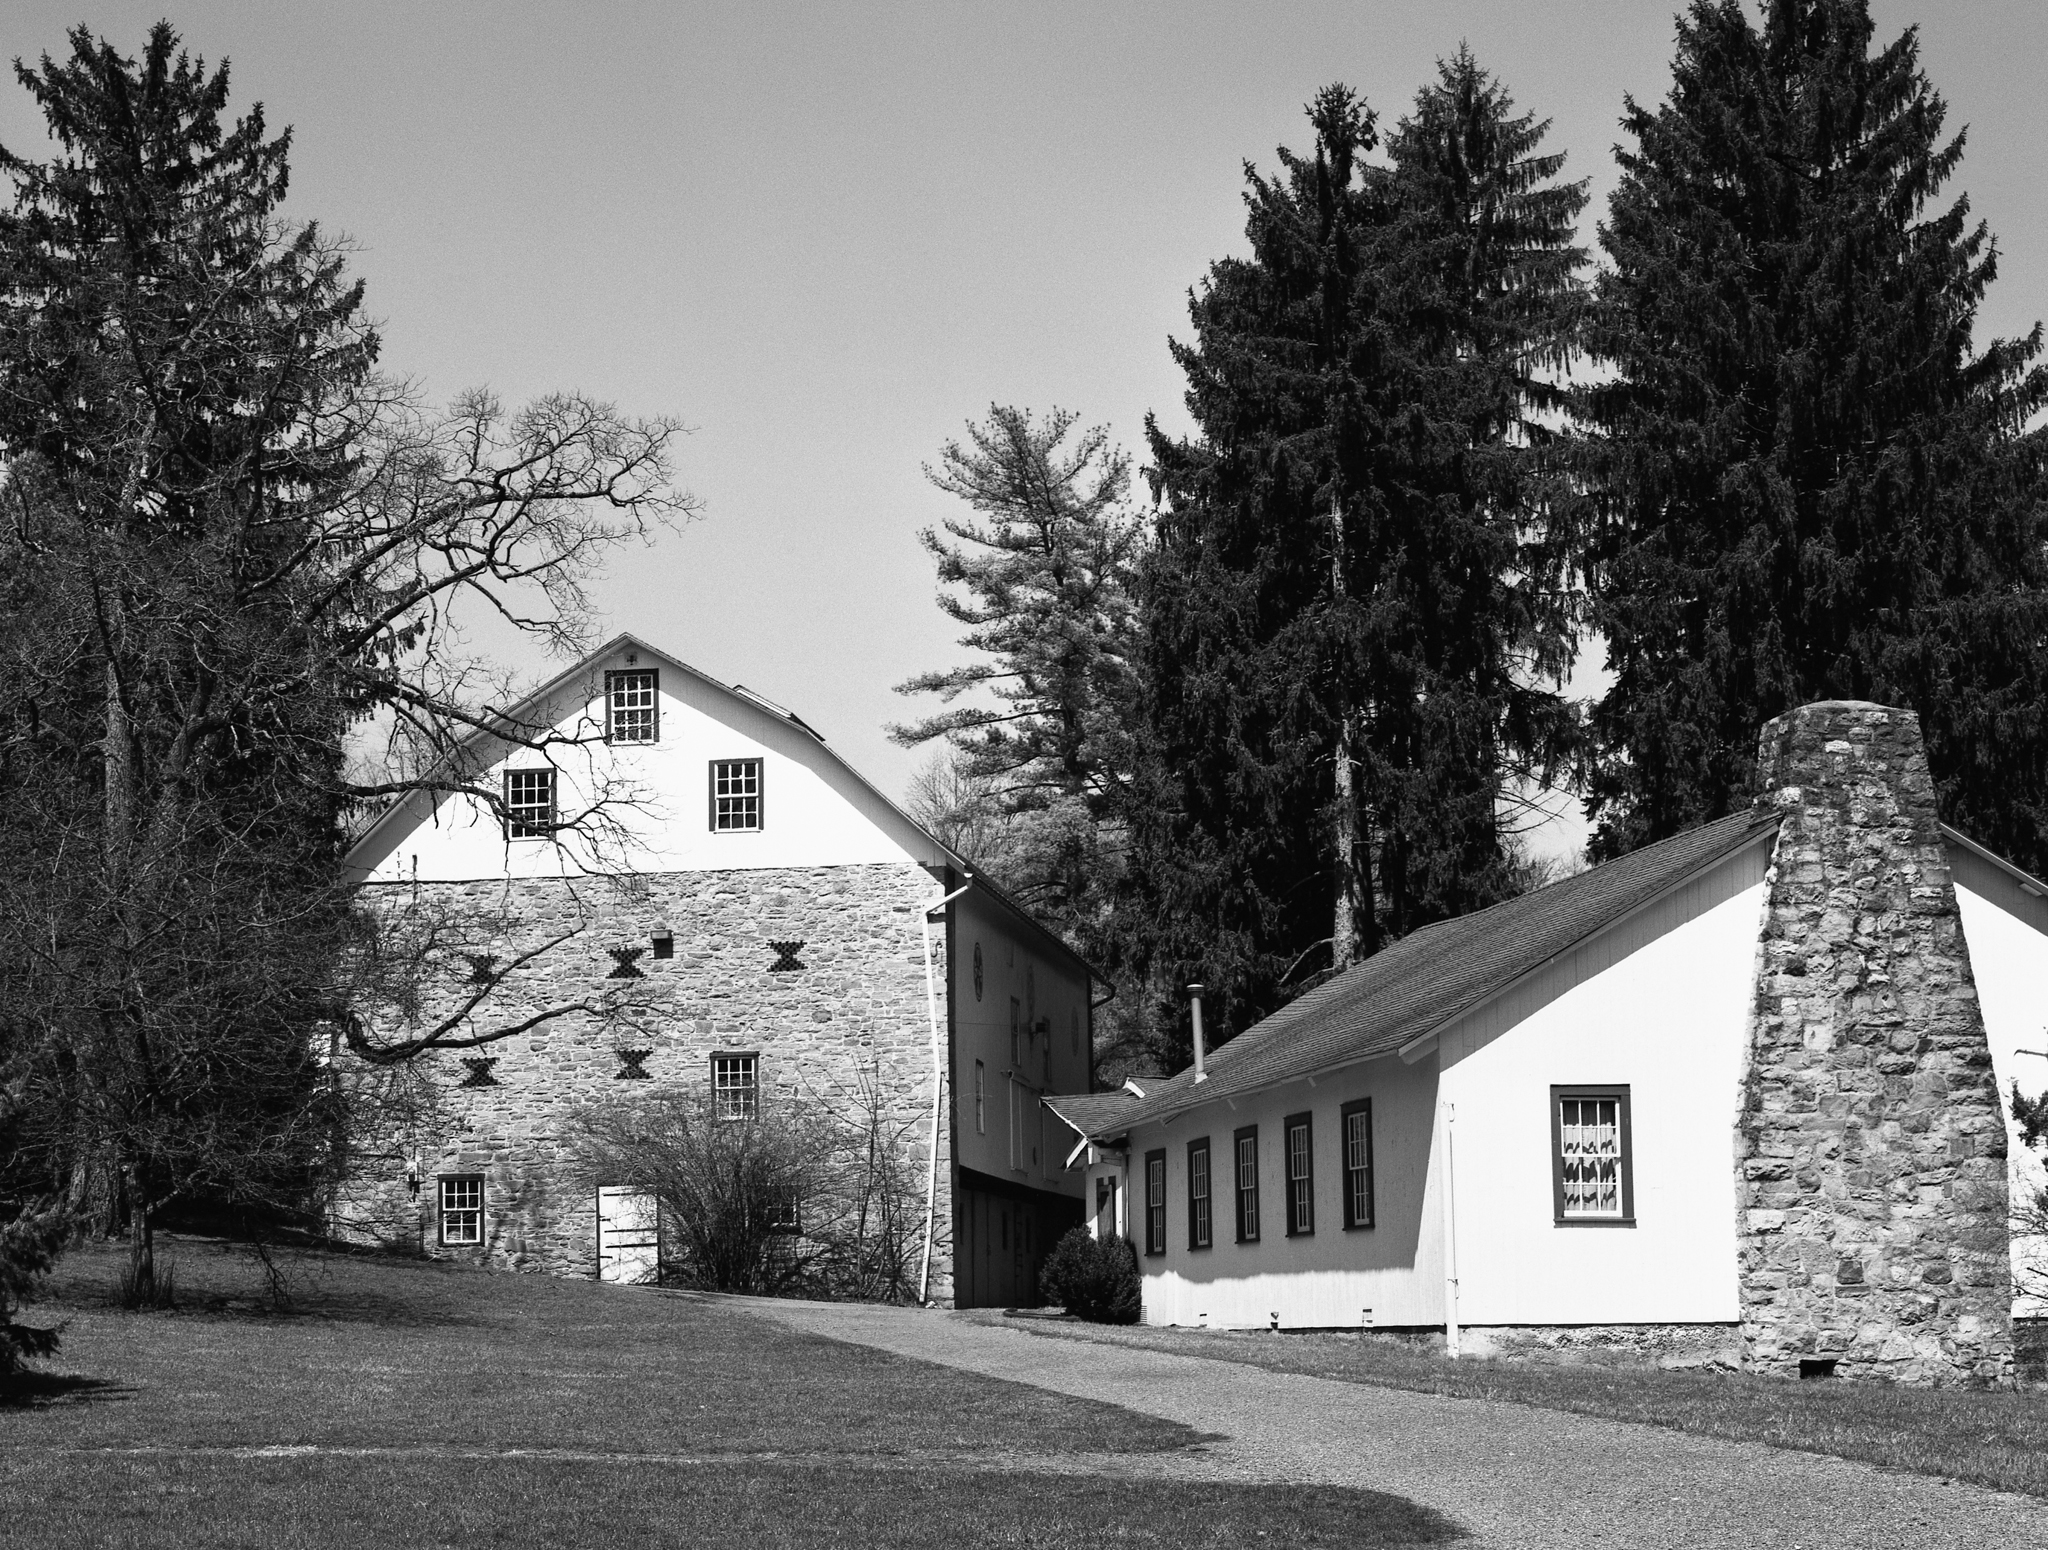 4x5_for_365_project_099_Barn_Bogerts_CB.jpg